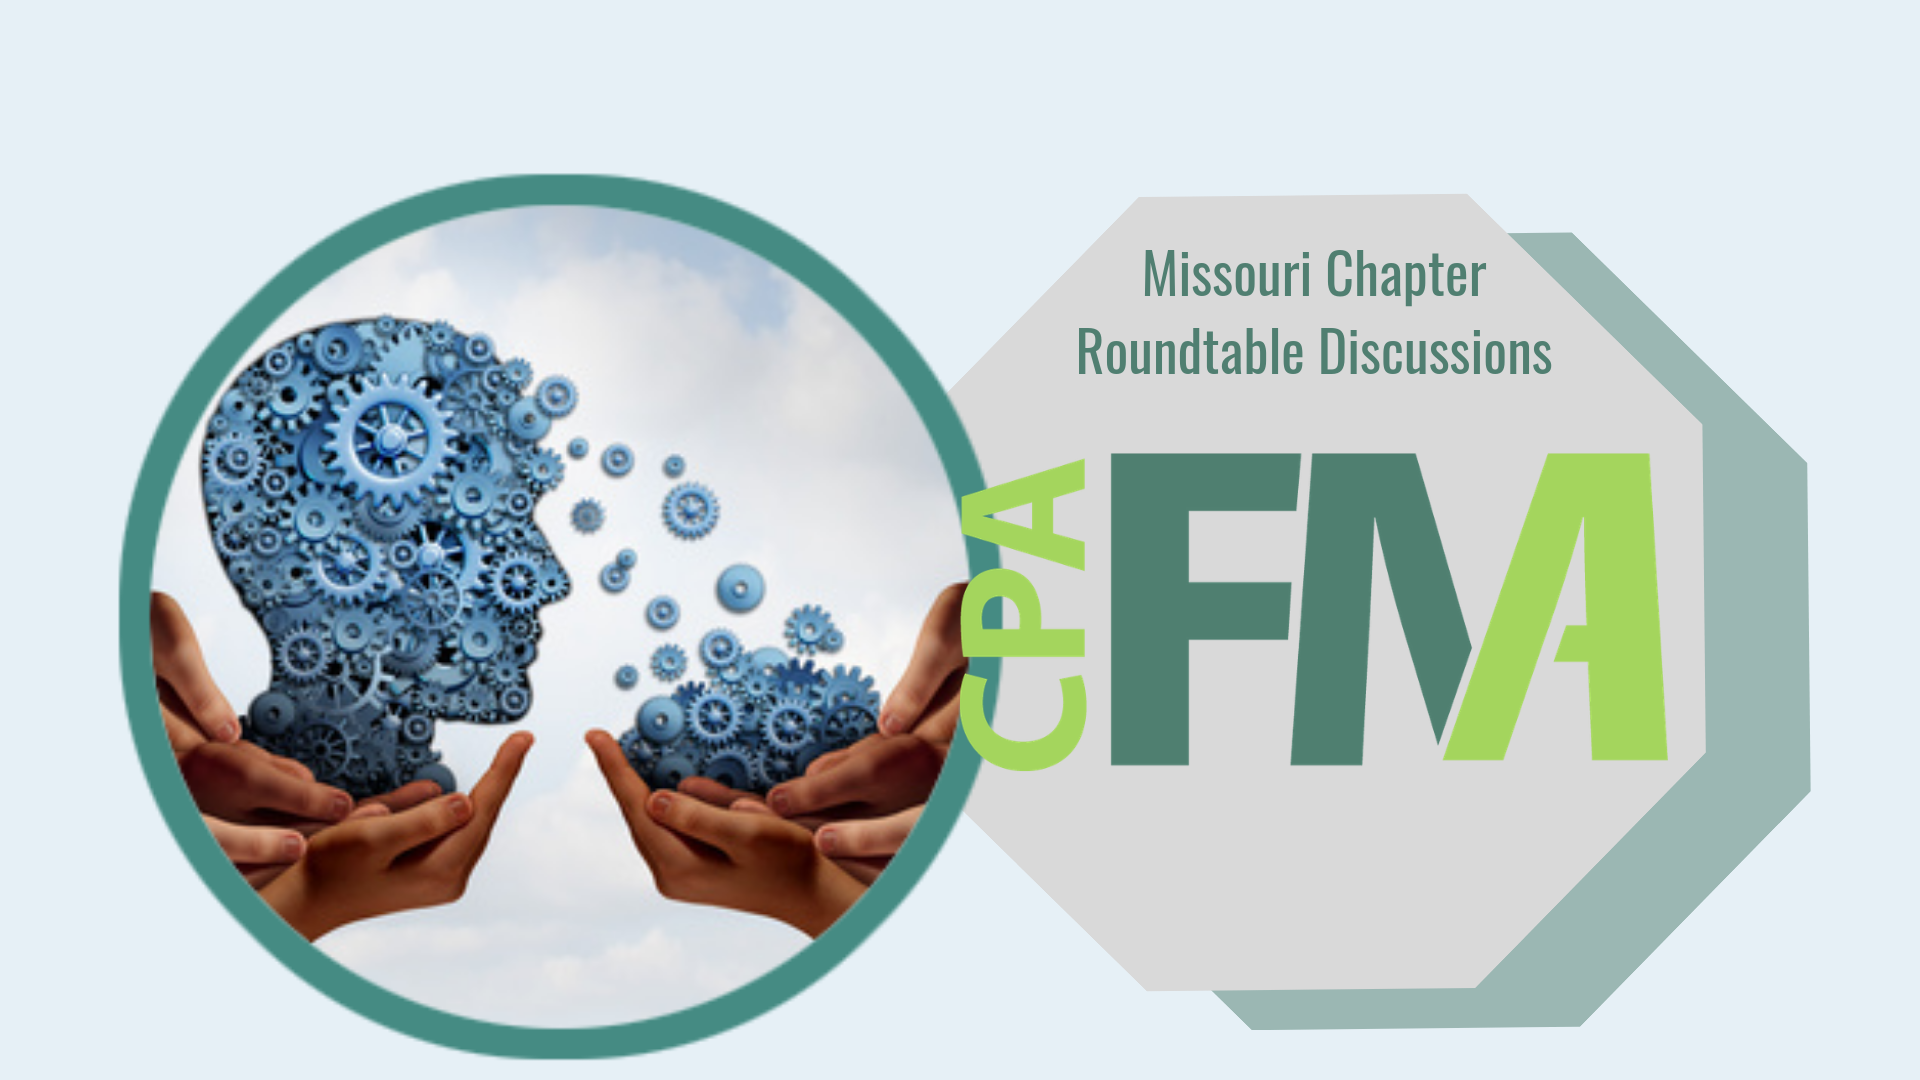 Missouri Chapter Meeting: Roundtable Discussion